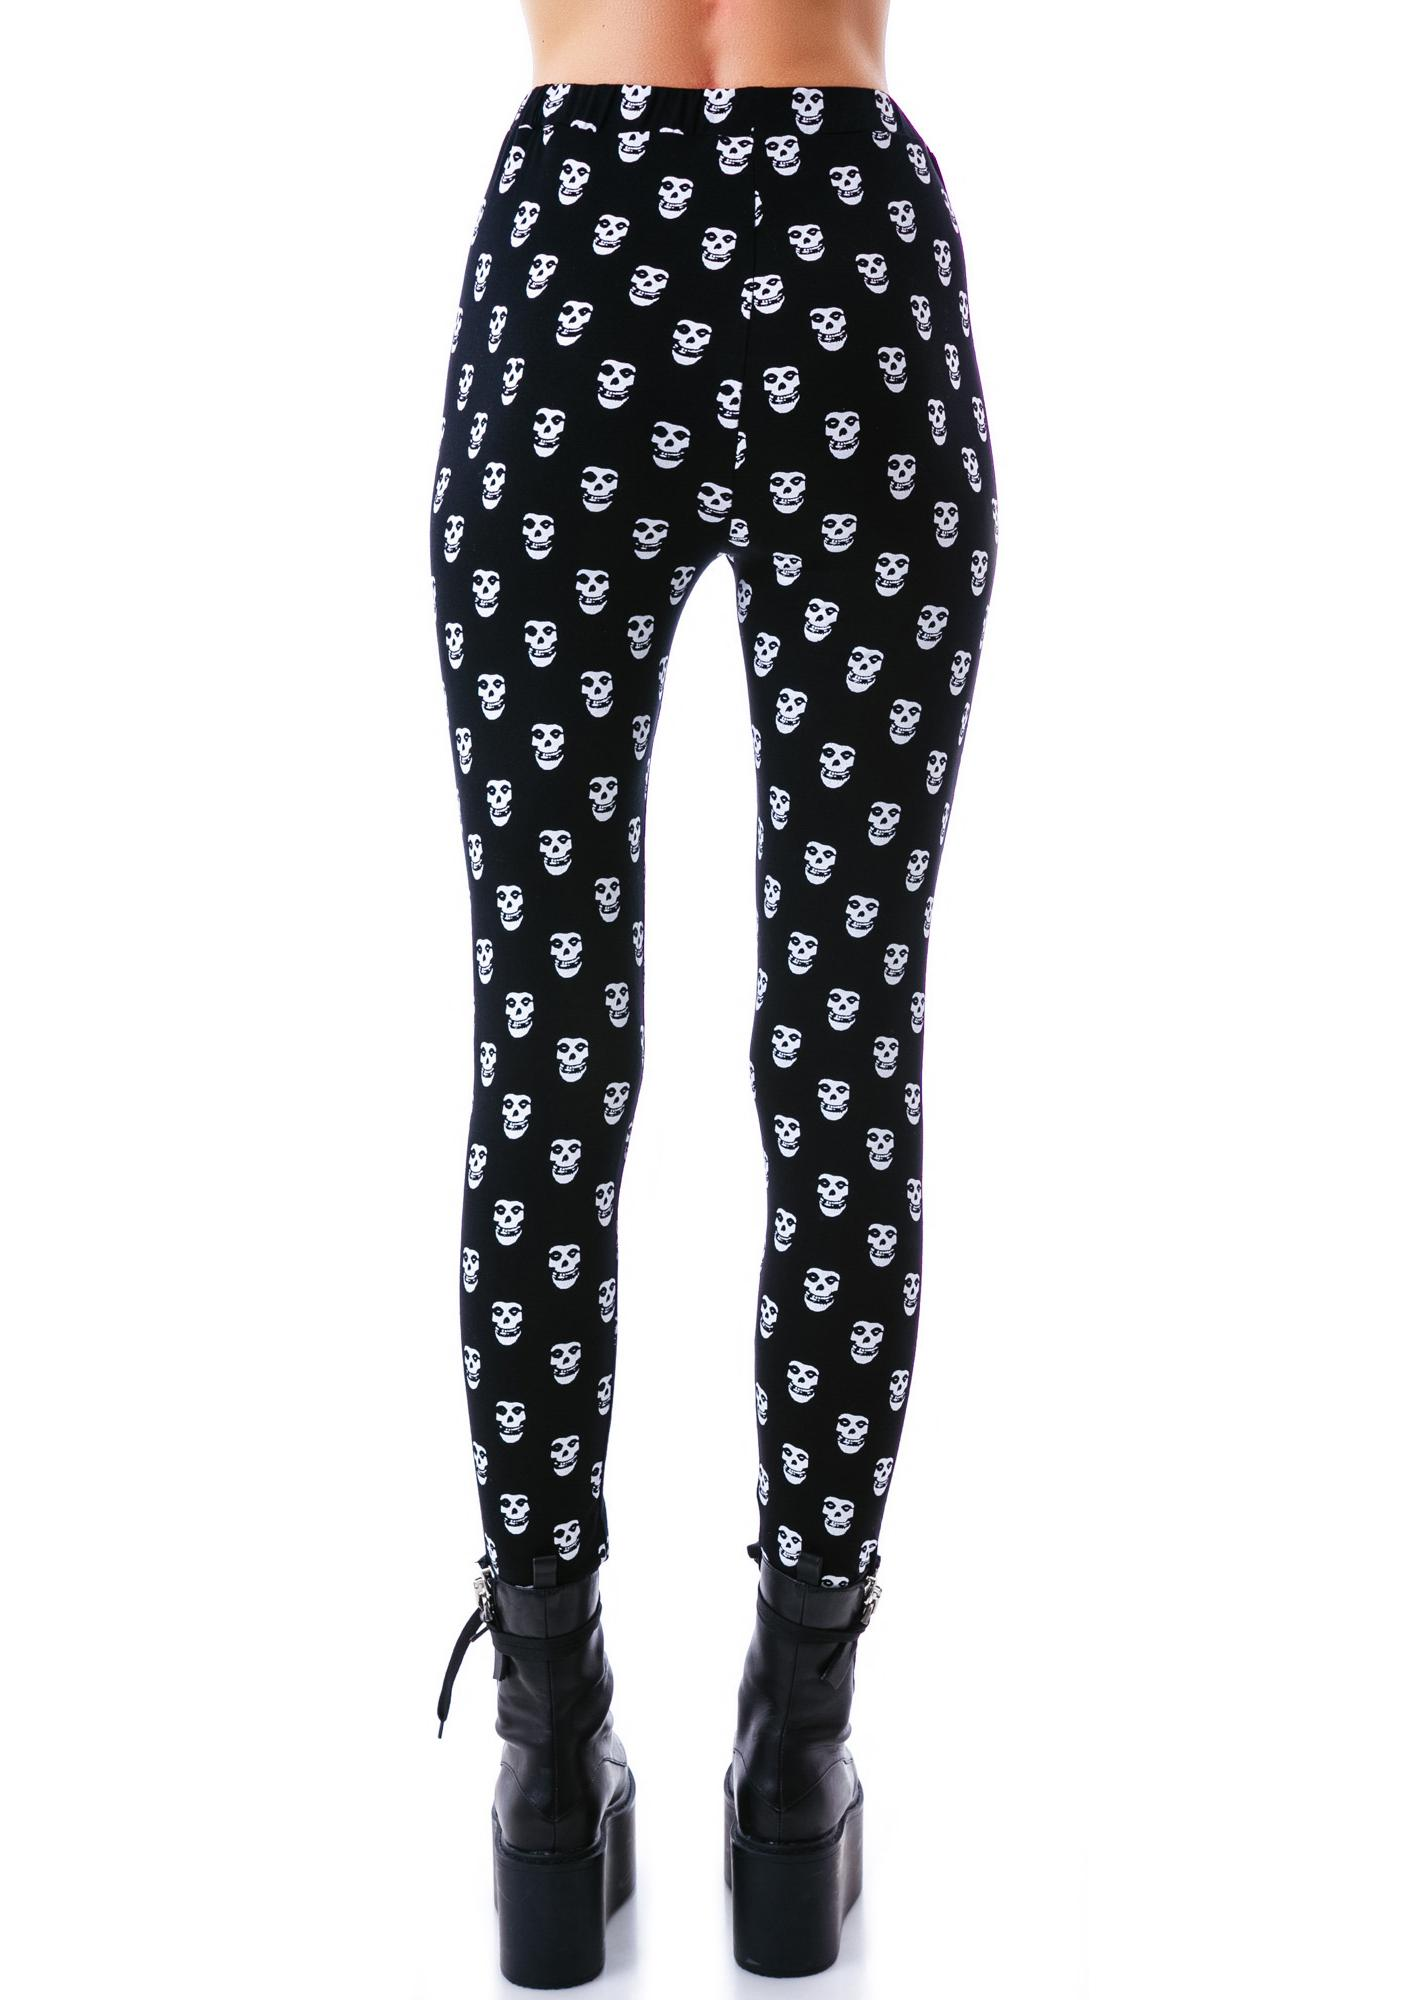 Sourpuss Clothing Misfits Leggings